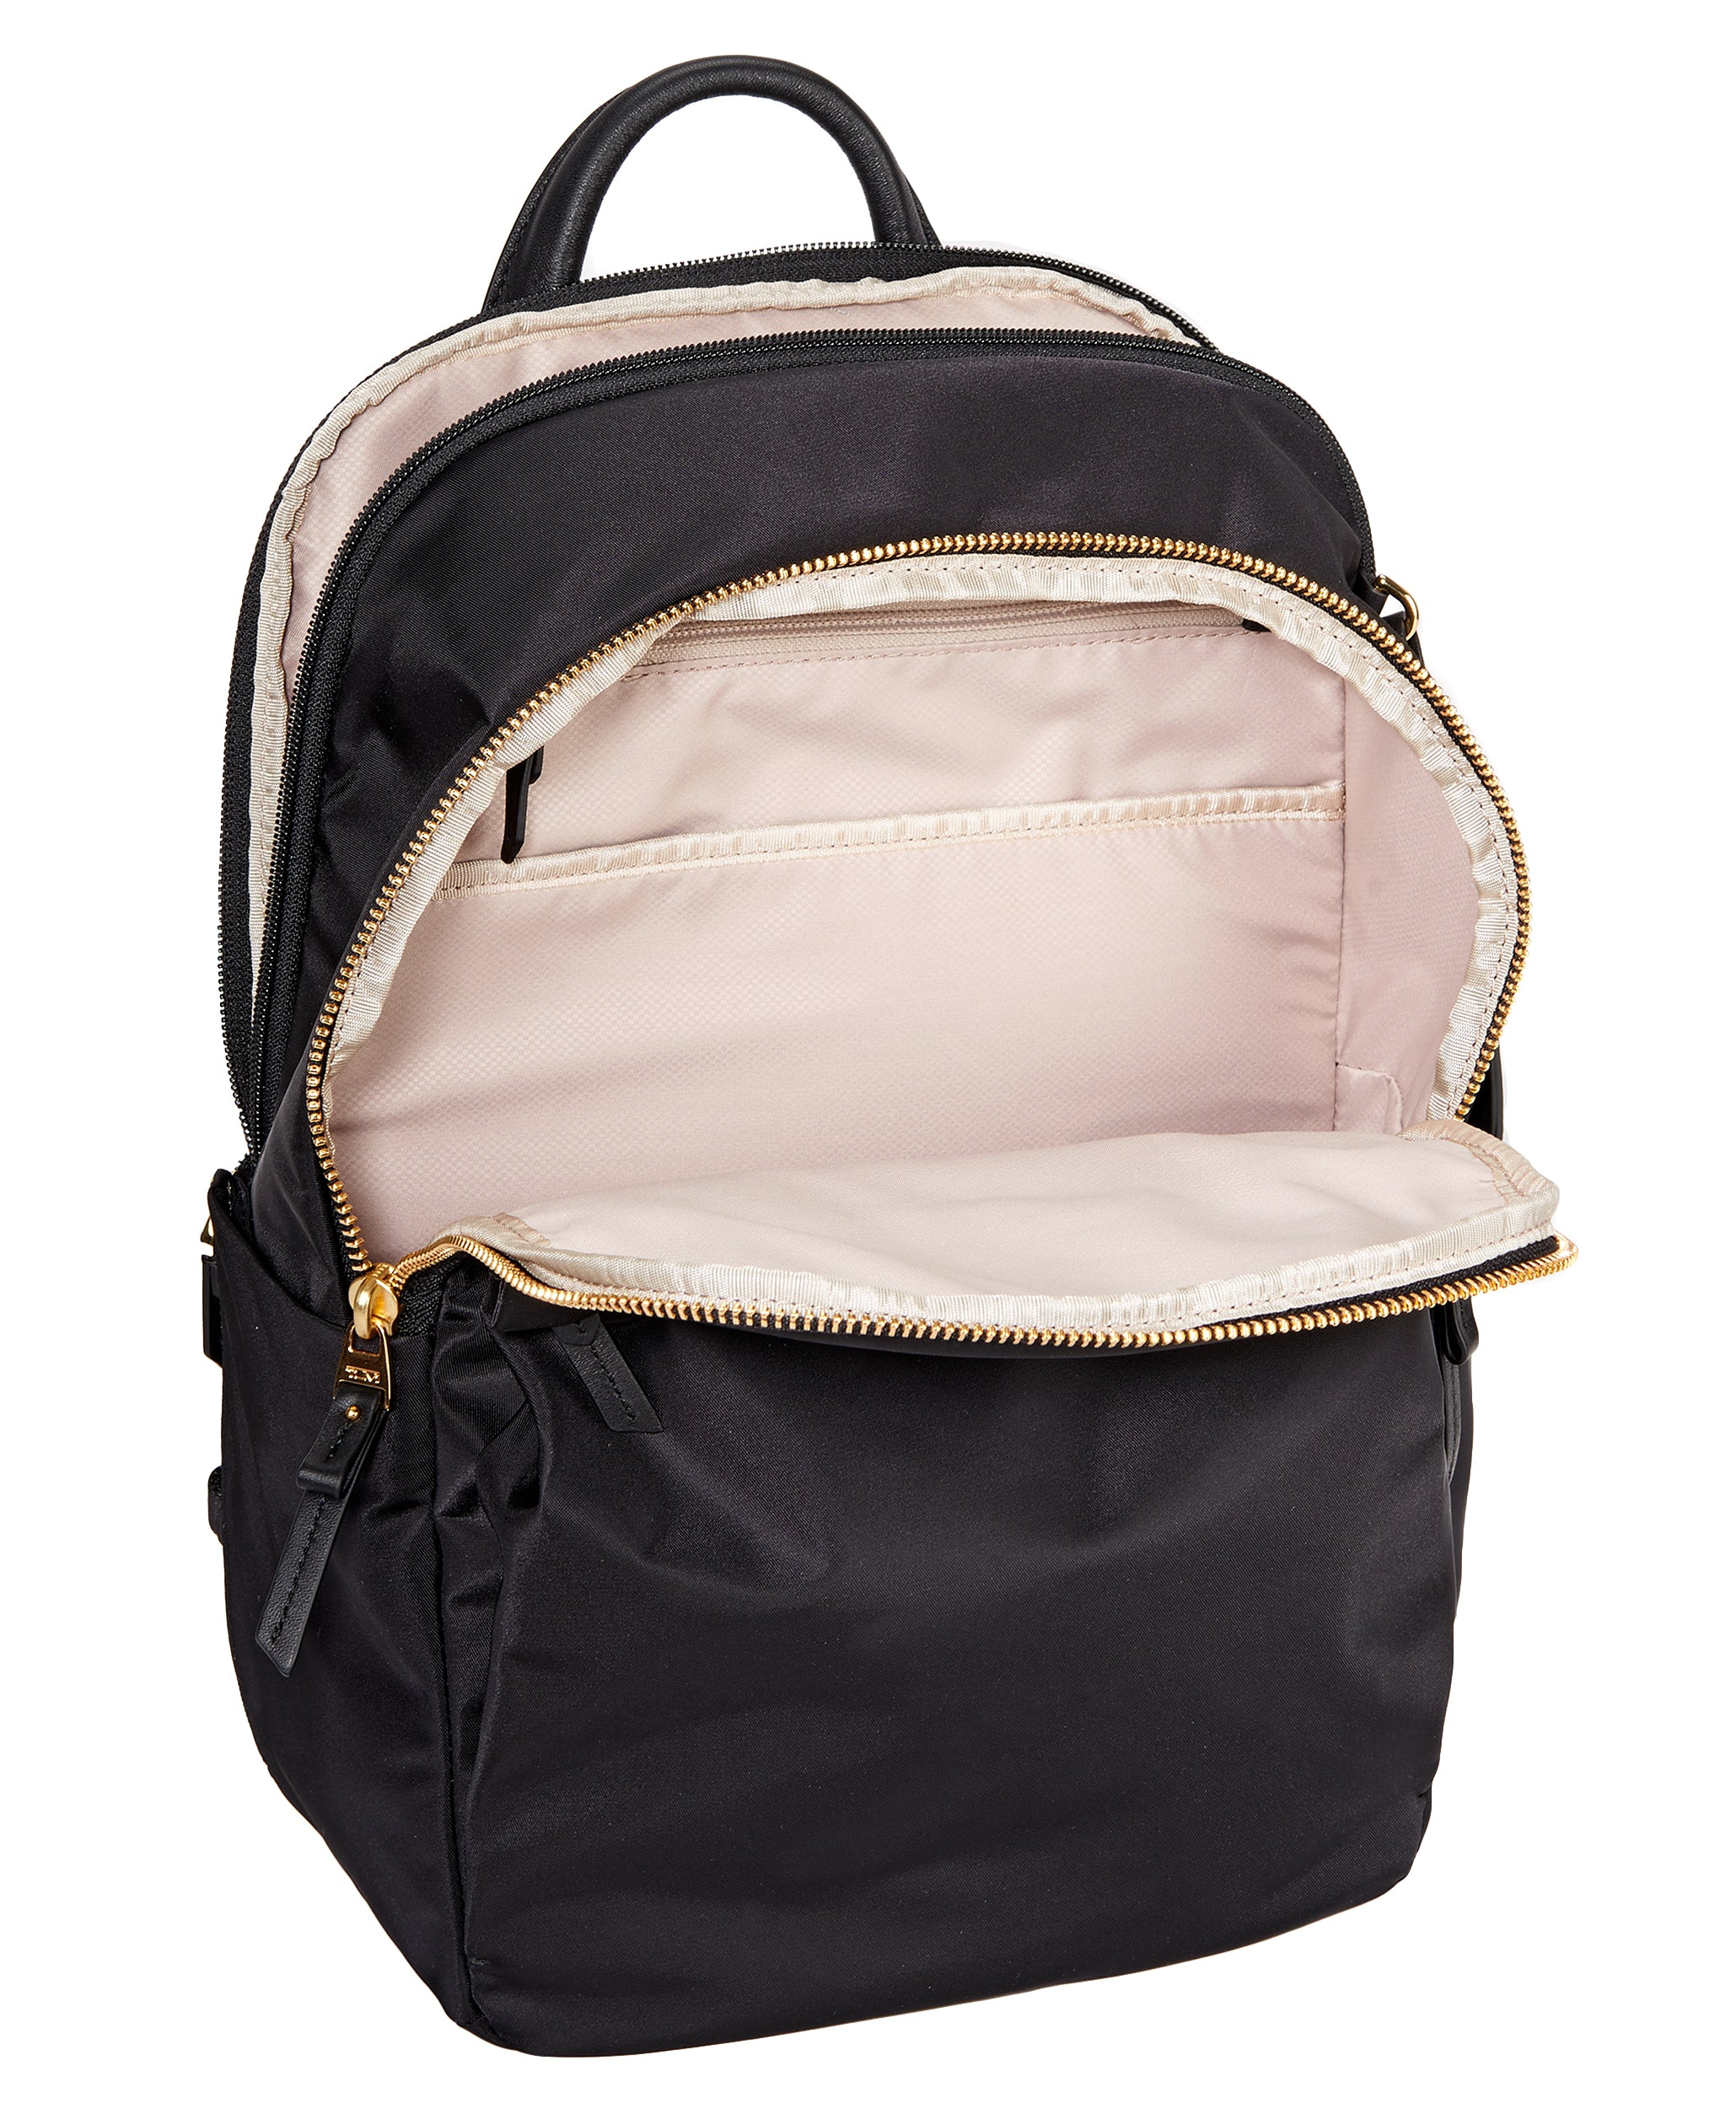 Tumi Voyageur Daniella Small Backpack - Black | MEGO